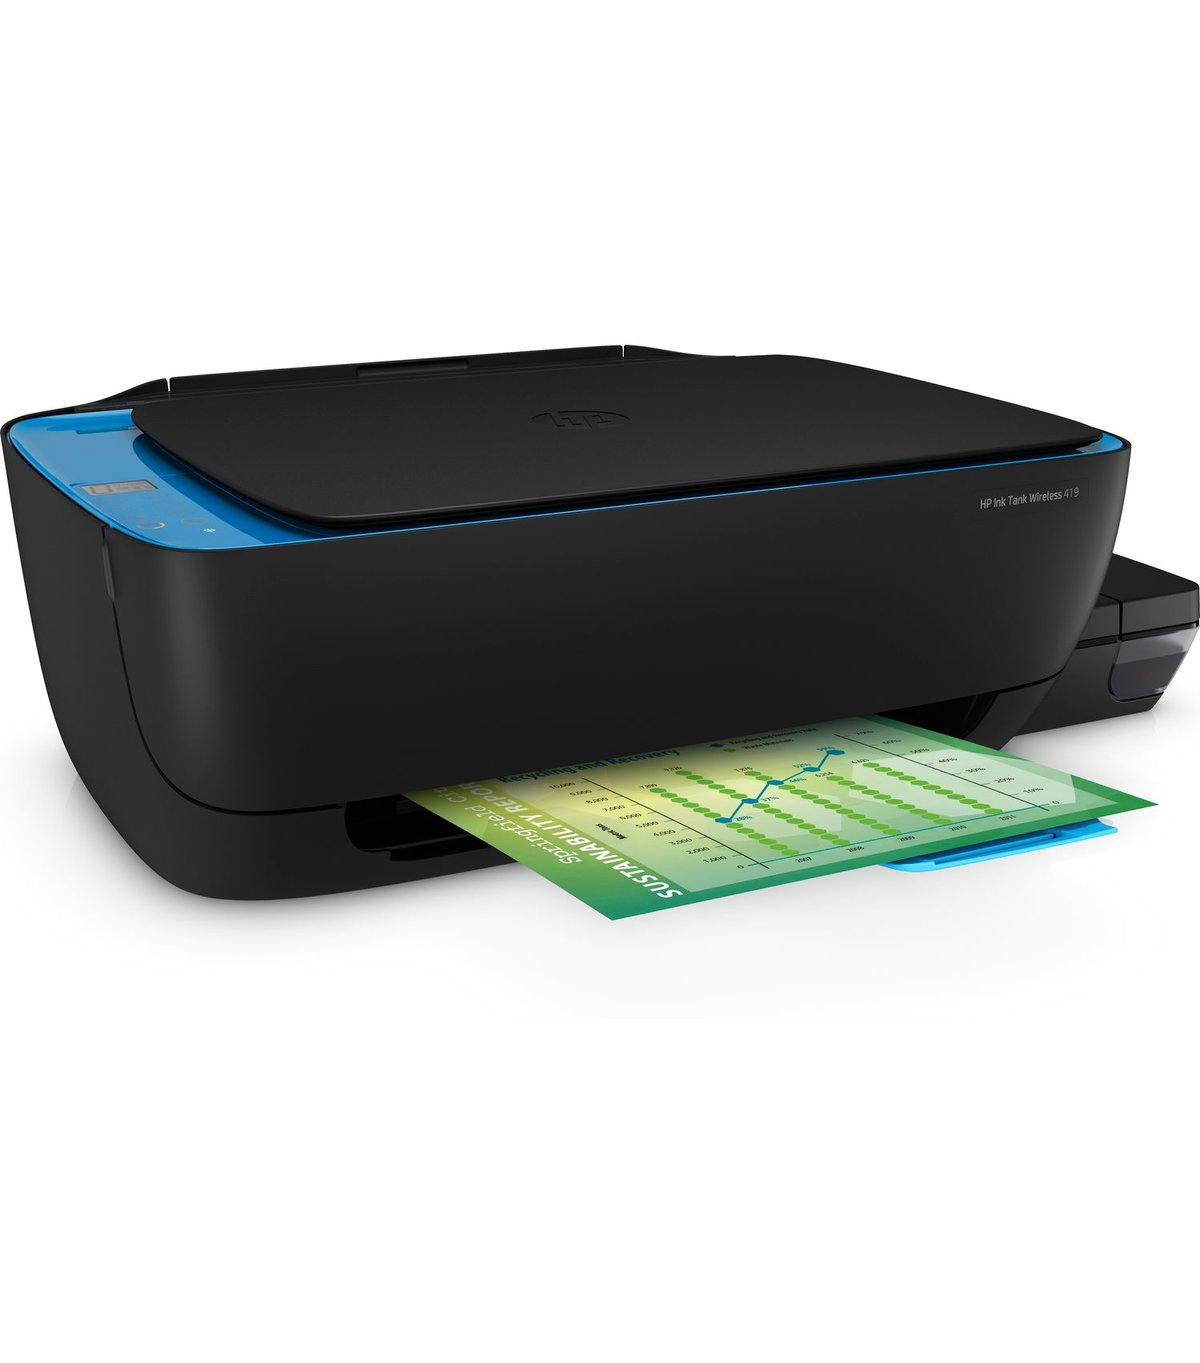 Print Domain For Business Inkjet Printers Hp Photo And Epson Printer L310 L 310 Document All In One Ink Tank Wireless 419 Z6z97a